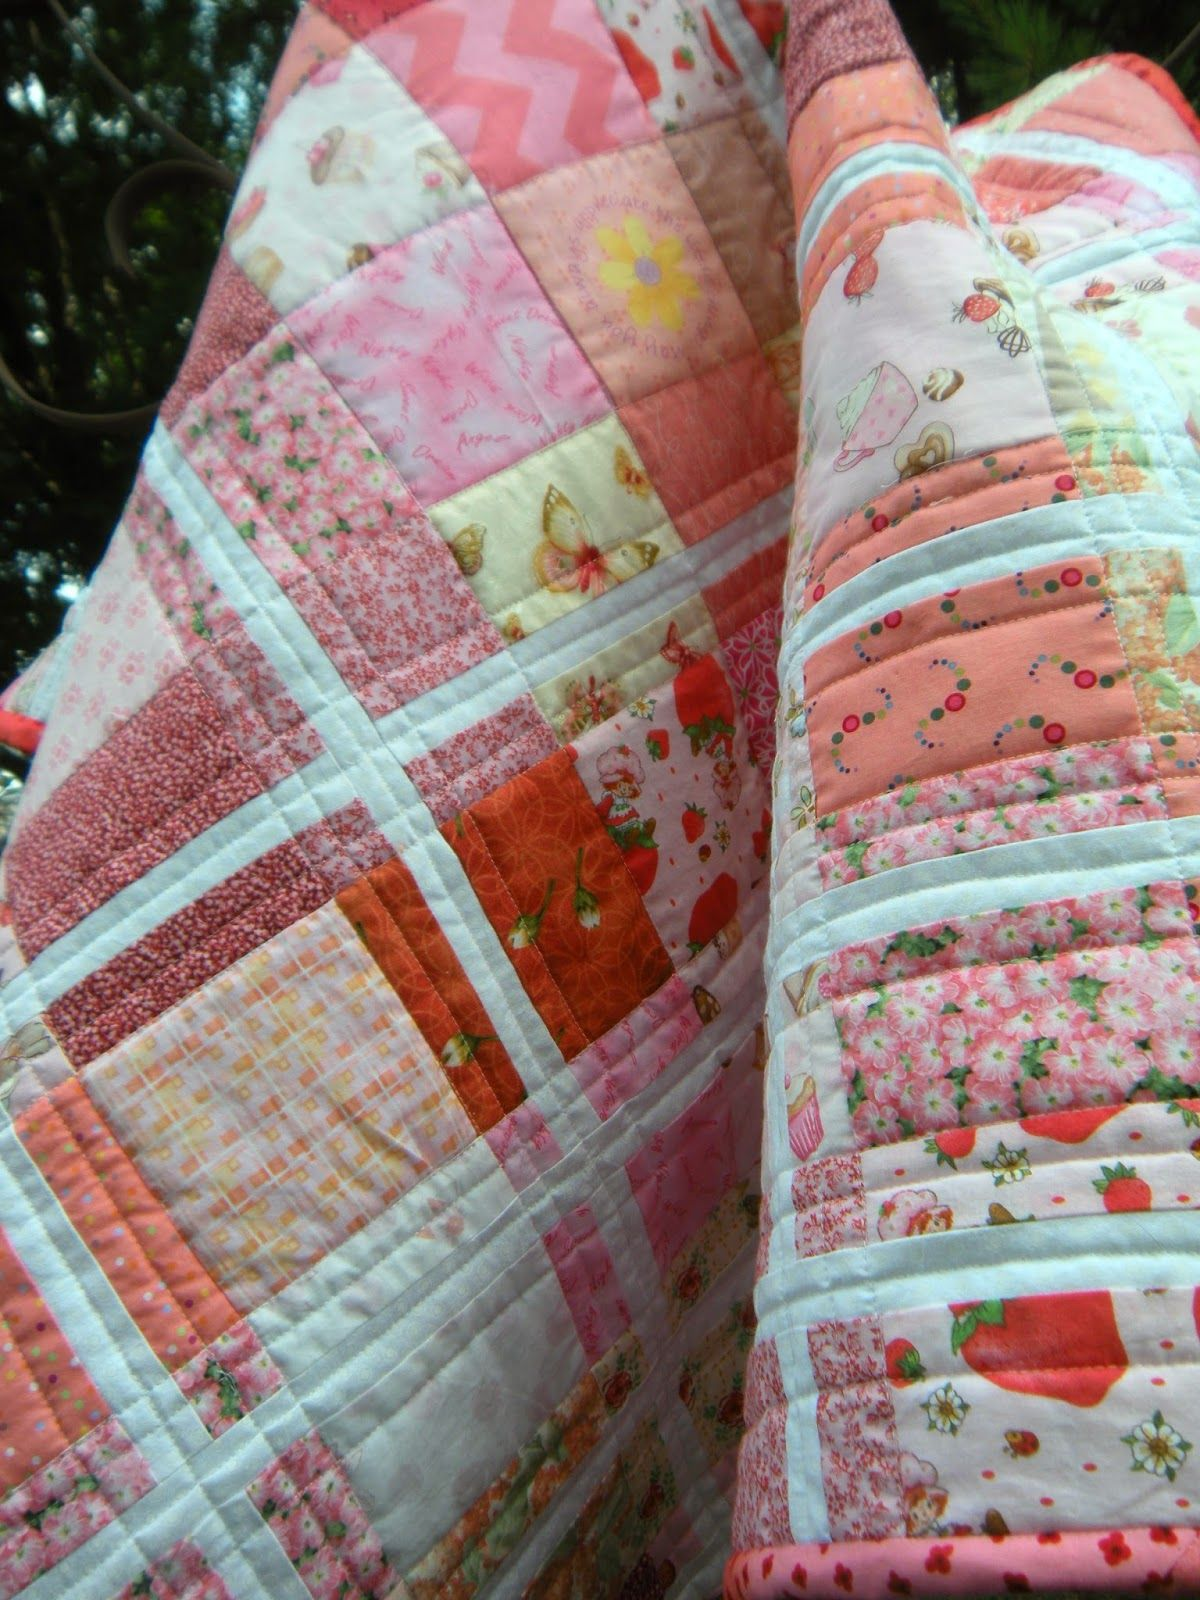 ❤ =^..^= ❤   Life in the Scrapatch: The Baby Sister Quilt is Done: Strawberry Shortcake ~ quilting details